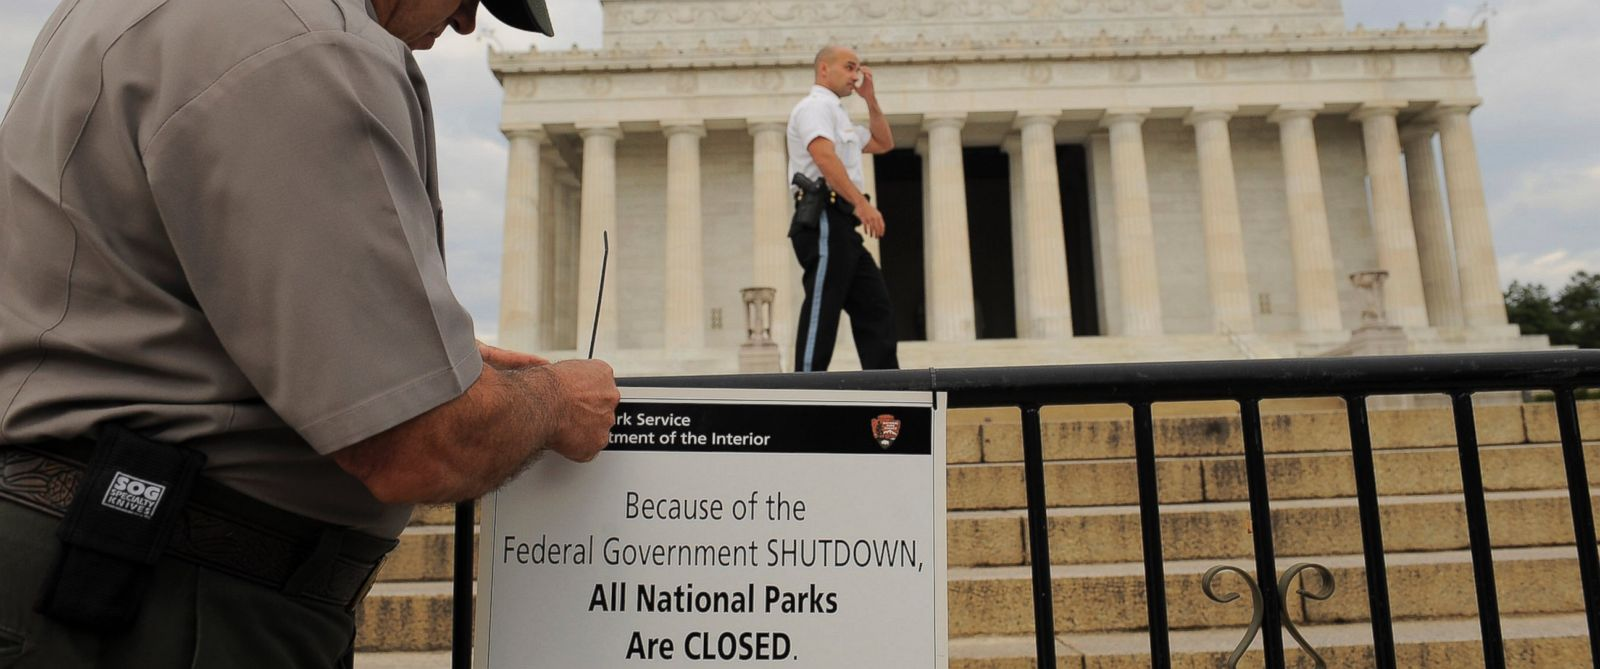 PHOTO: Richard Trott of the National Park Service puts up a sign announcing the closure of the Lincoln Memorial due to the government shutdown on Oct. 1, 2013 in Washington, DC.